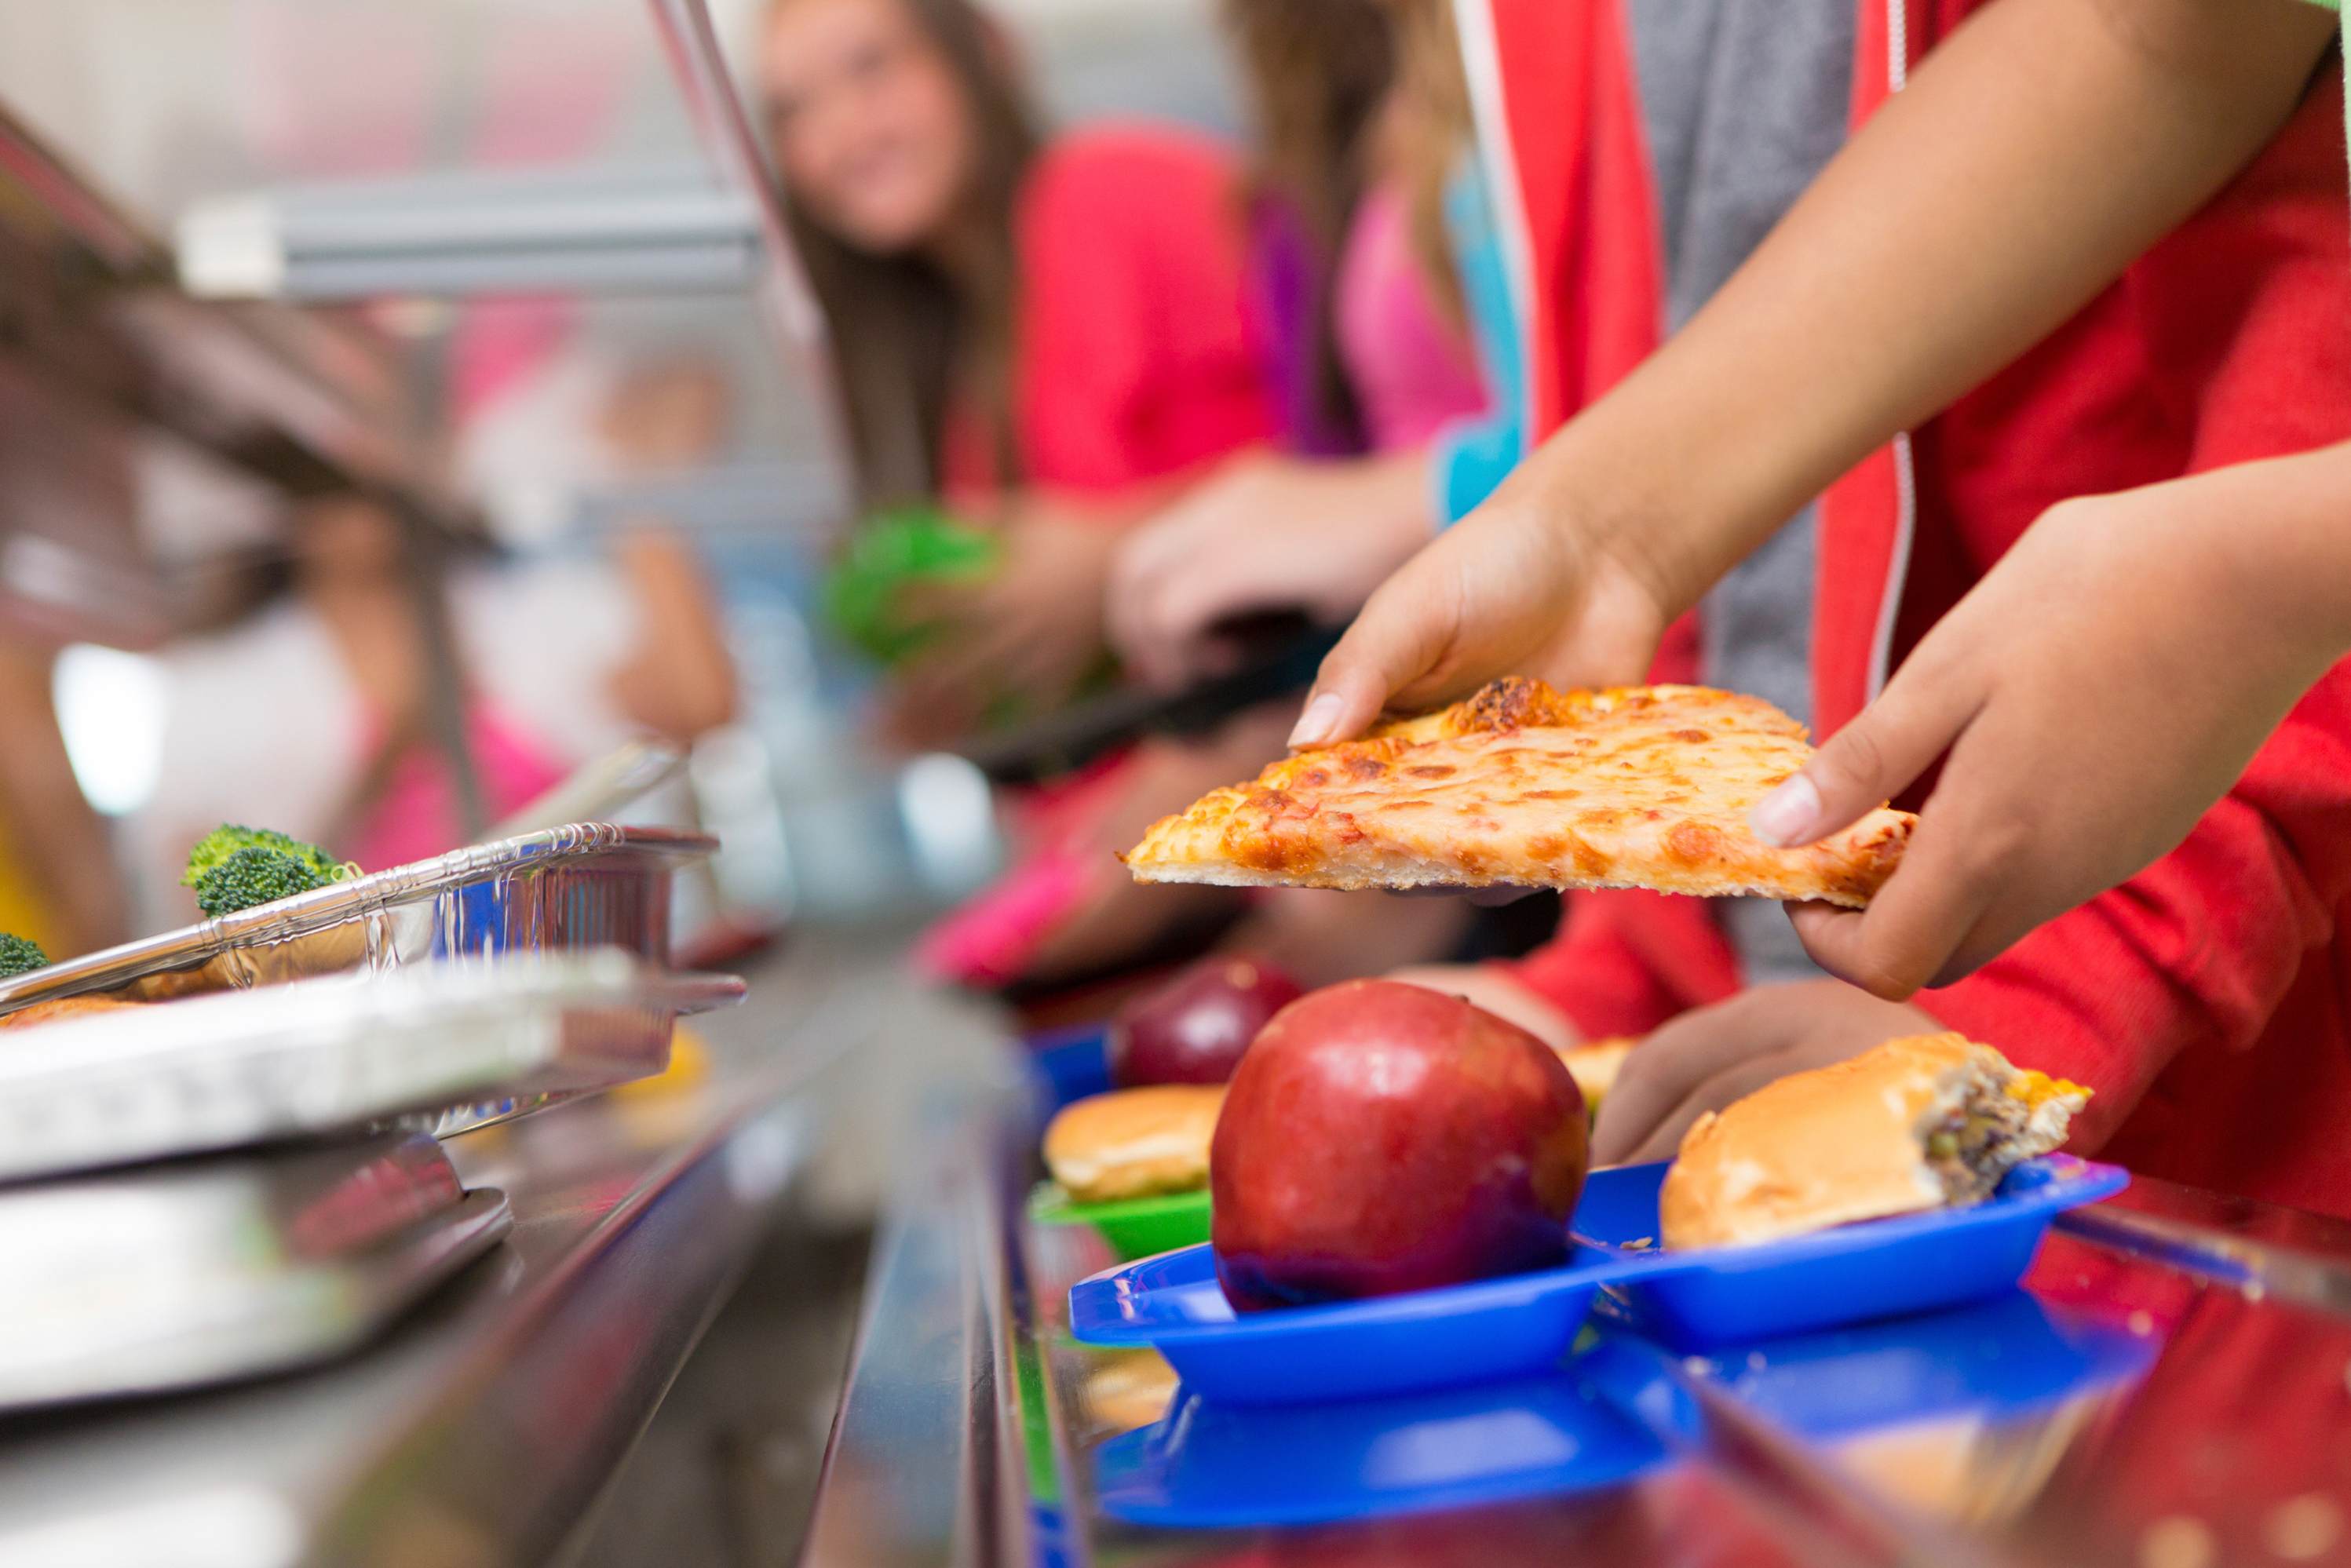 time to eat school lunch essay Negative effects of skipping lunch benefits of eating lunch good lunch choices parental influence — with the importance a good lunch benefits a student by giving him the energy to remain alert during class time this is true whether the student is in elementary school, high school or college.